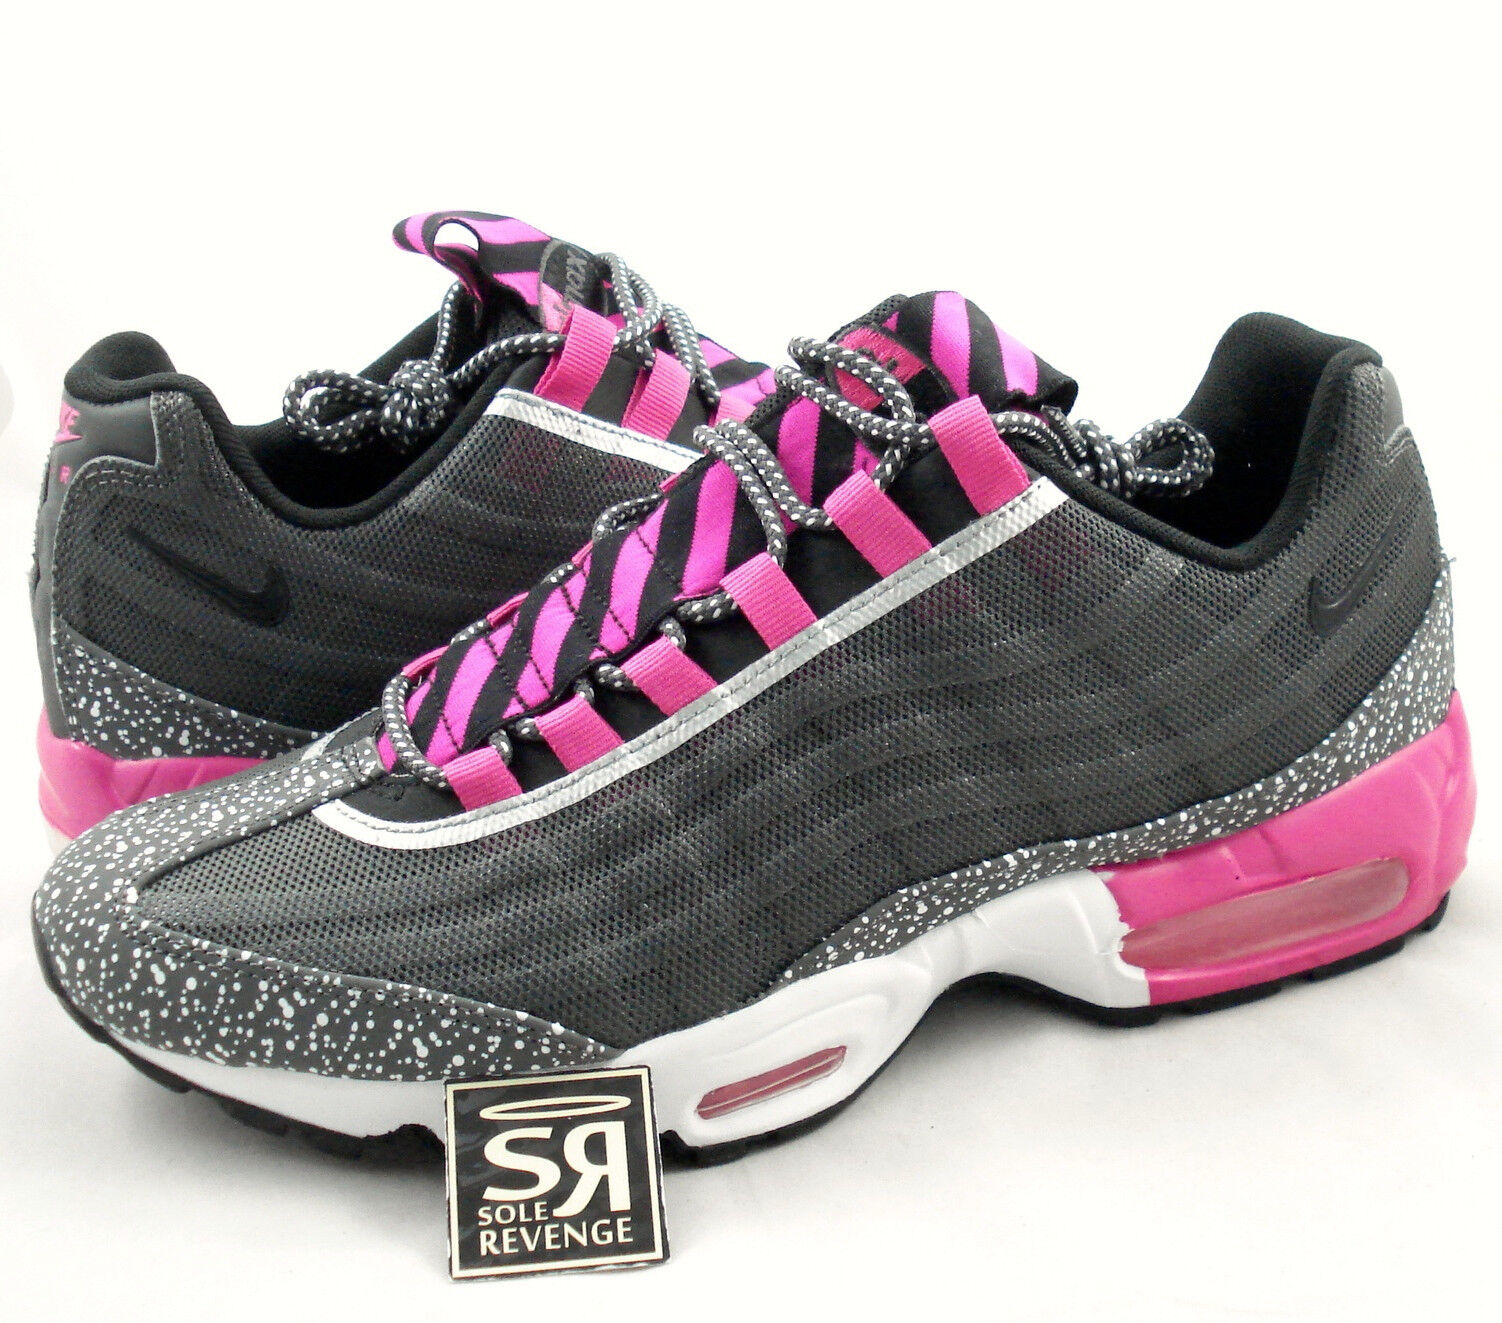 NEW 10 Hommes Nike Air Max 95 Premium Tape Running Midnight Fog/ Noir /Pink Foil